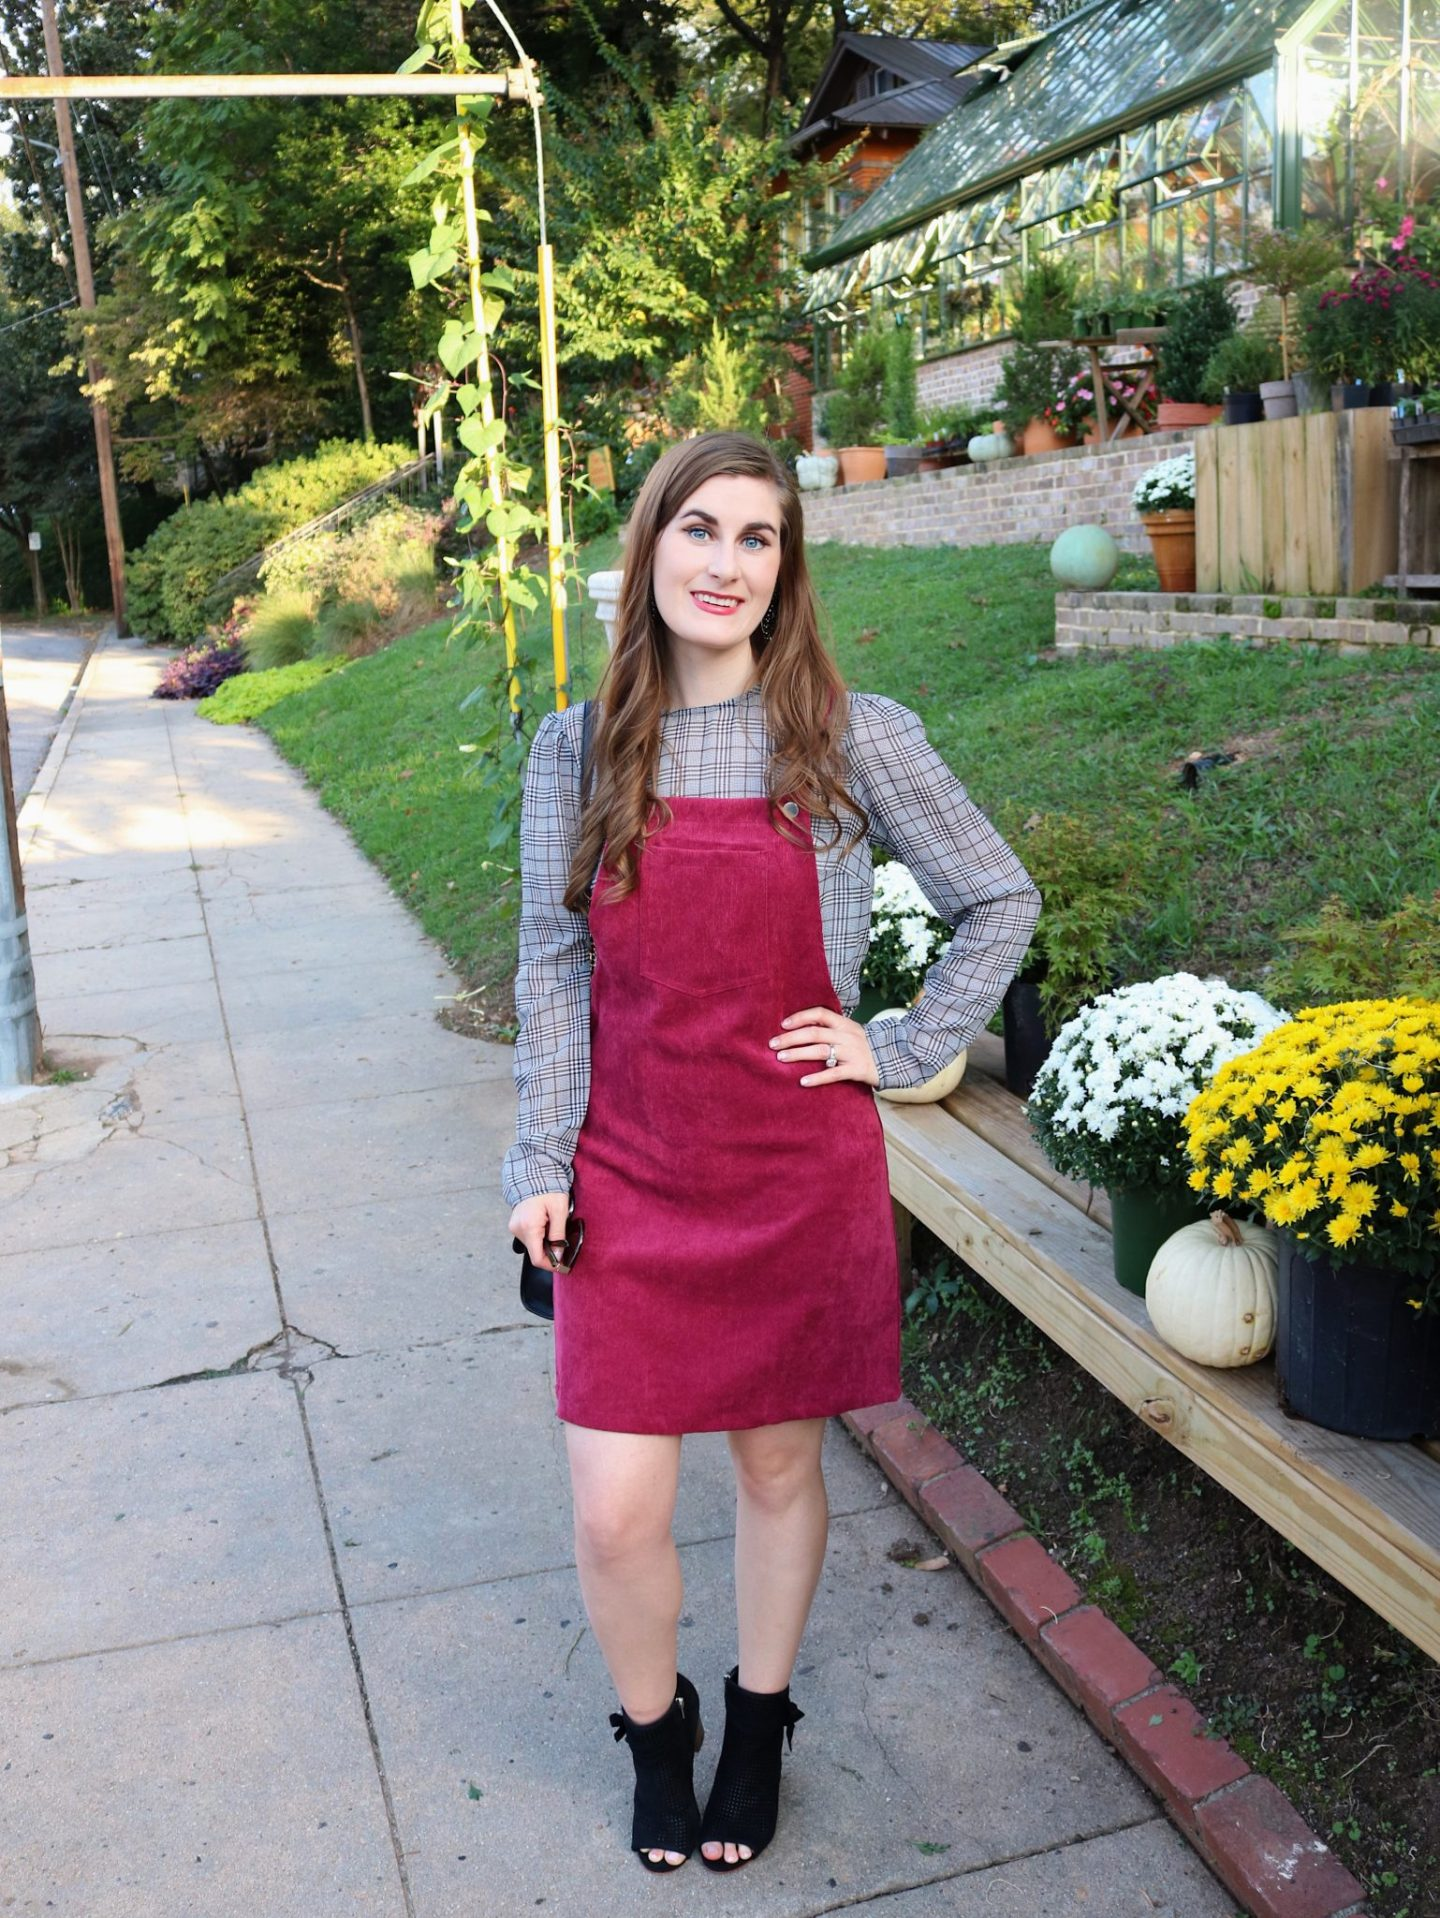 Trending: The Overall Dress + A Life Update